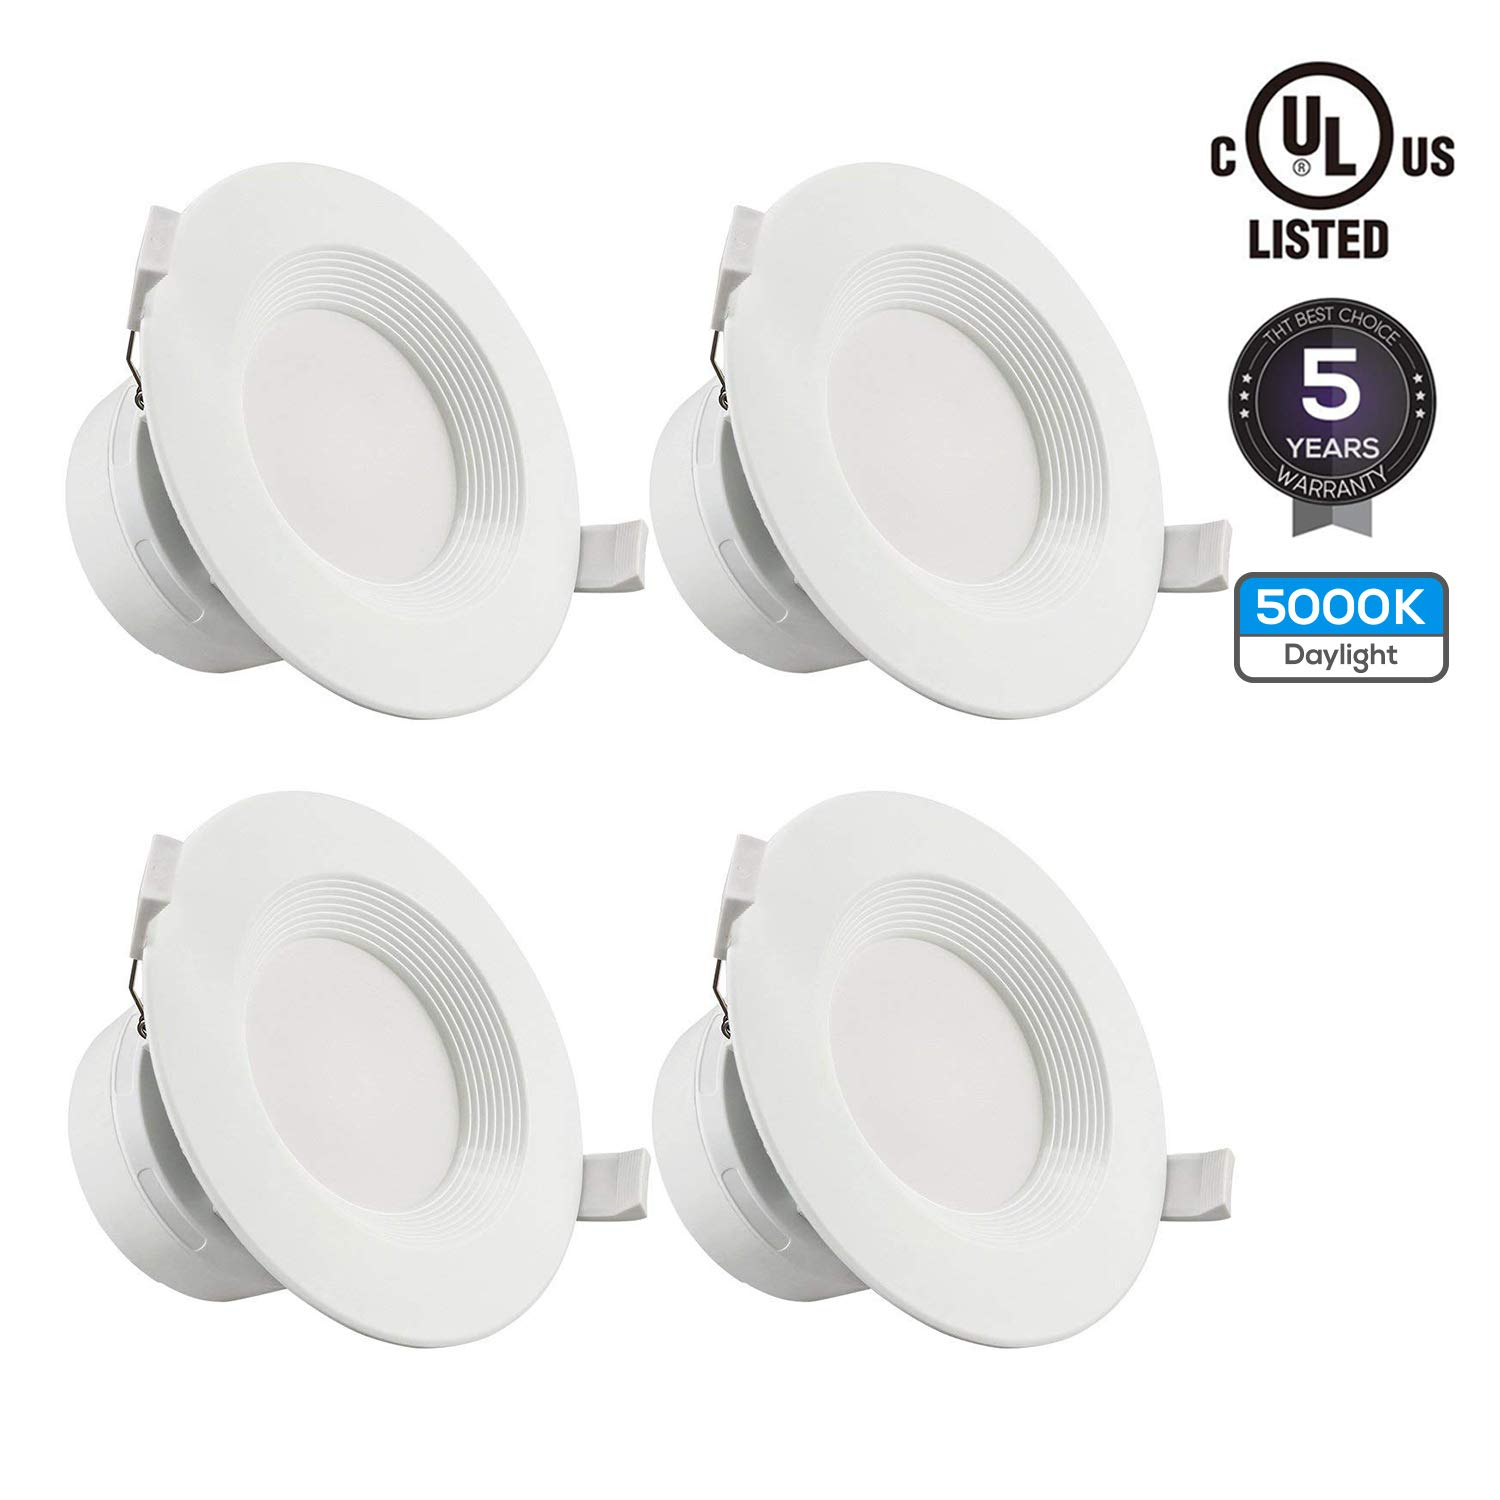 TORCHSTAR 4 PACK 6'' LED Recessed Downlight with Junction Box, 9W (80W Equivalent) Dimmable LED Ceiling Light Fixture, IC-Rated & Air Tight, Wet Location, 5000K Daylight, UL-listed, 5 Years Warranty